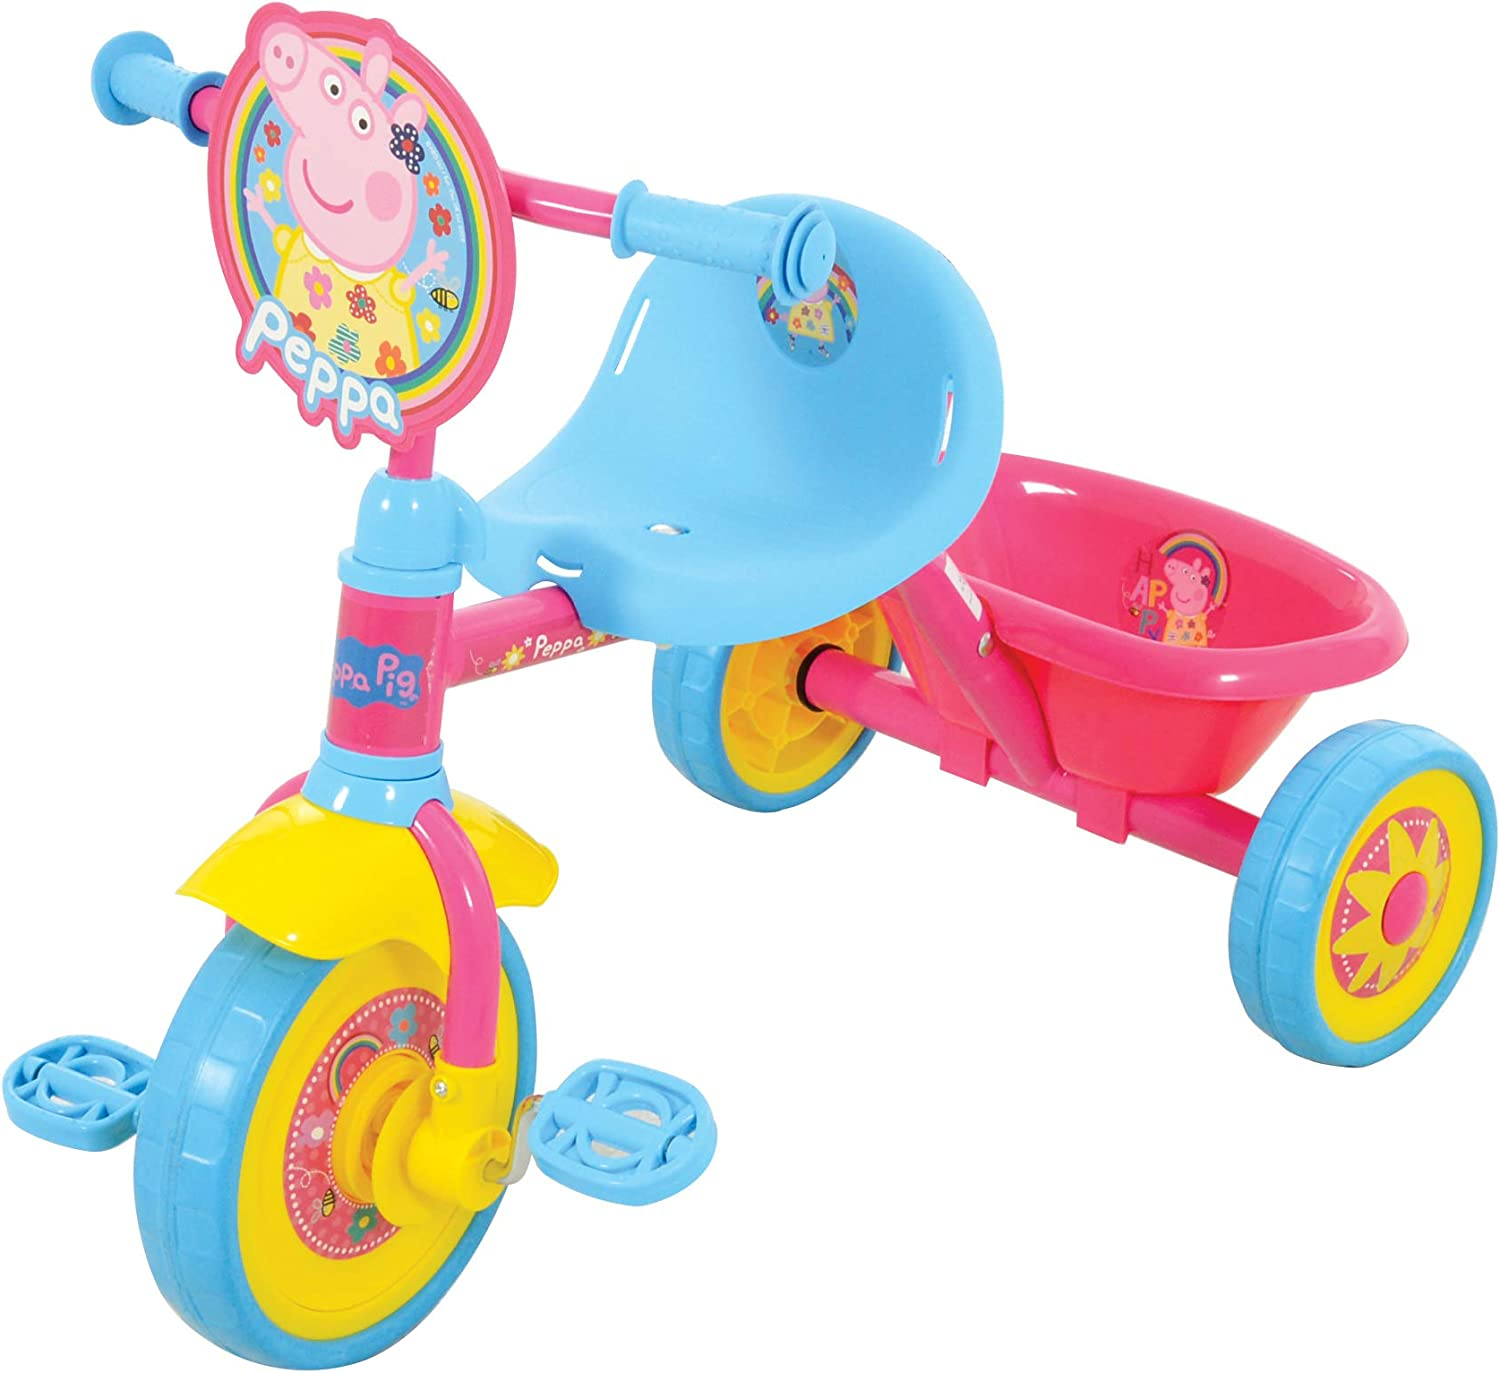 Amazon.com: Peppa Pig M14728 Tricycle, Pink: Toys & Games